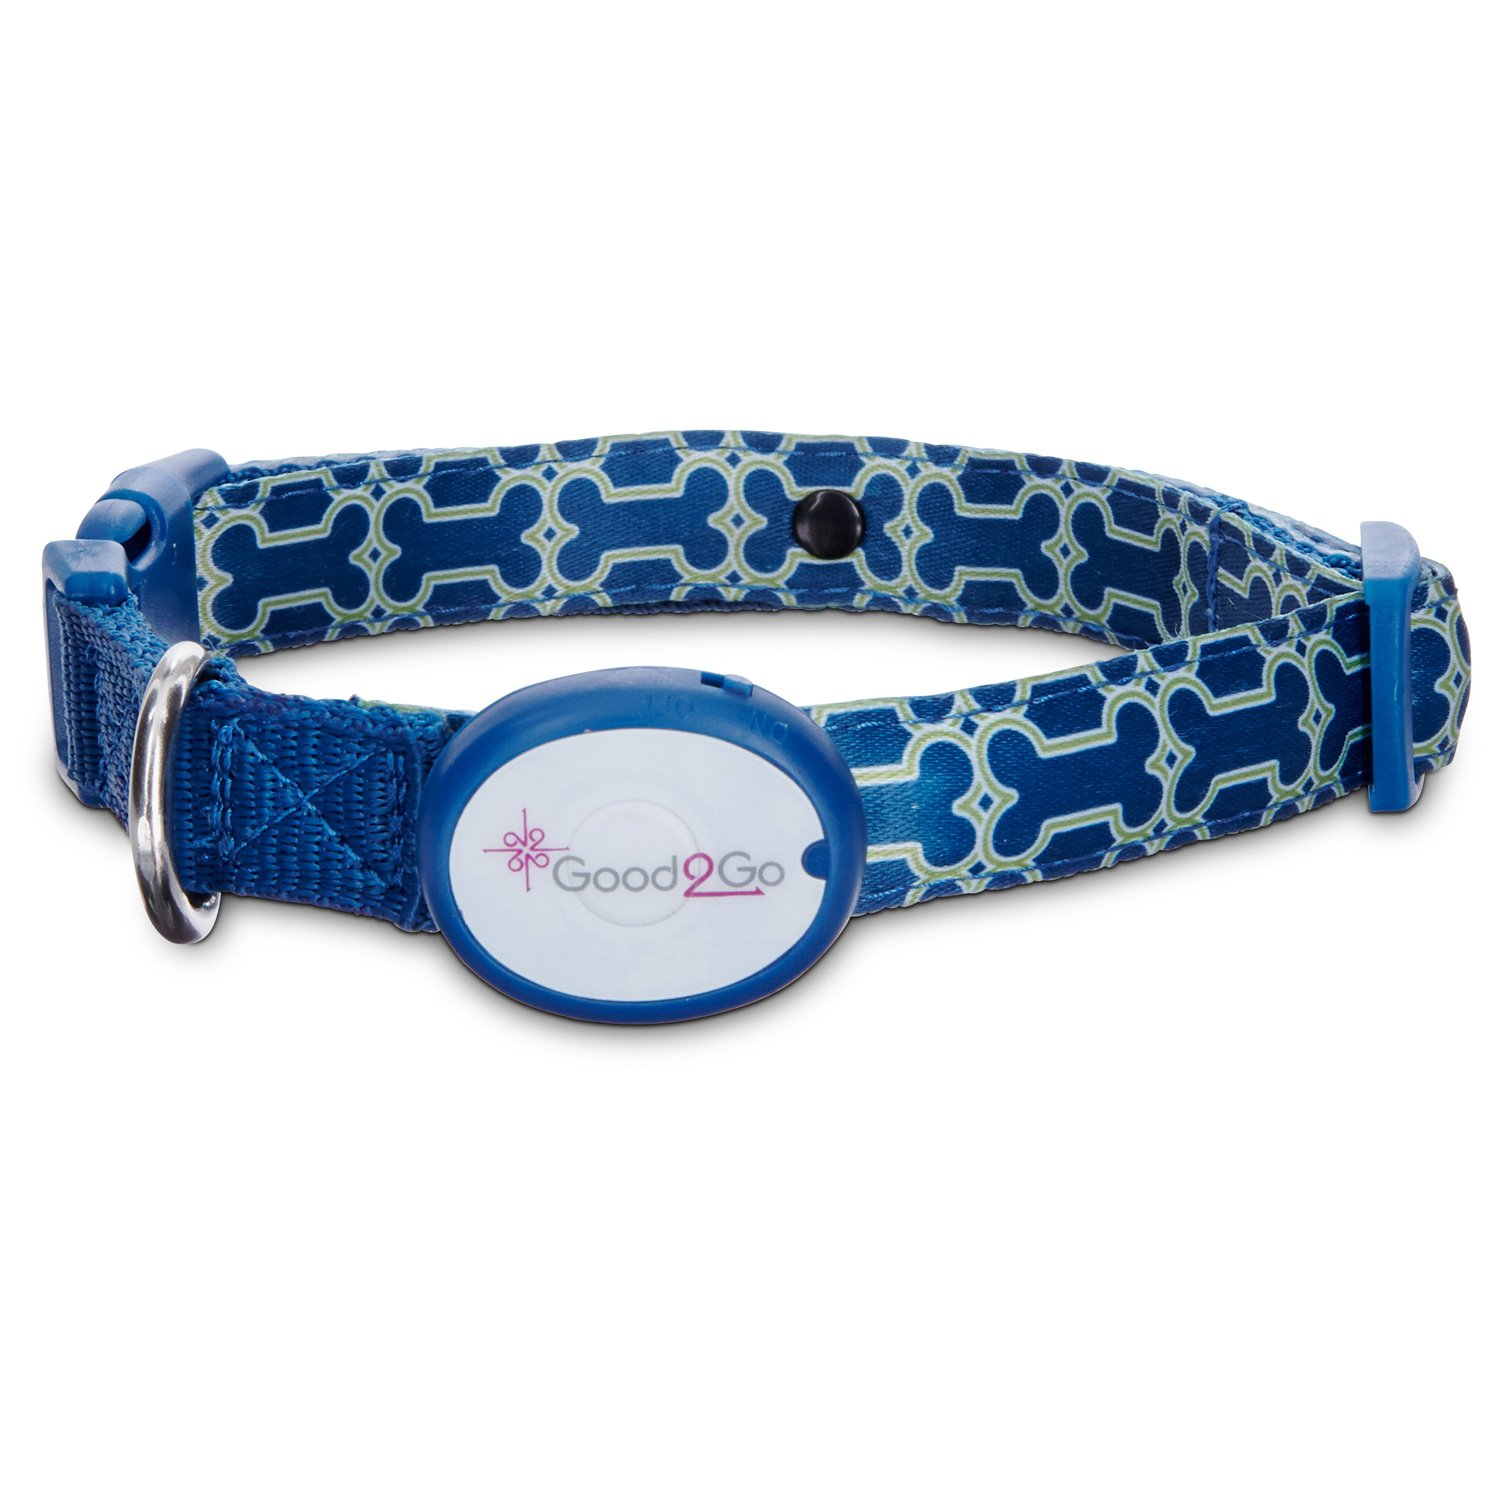 Good2Go Geometric Bone Print Light-Up LED Dog Collar in Blue & Green